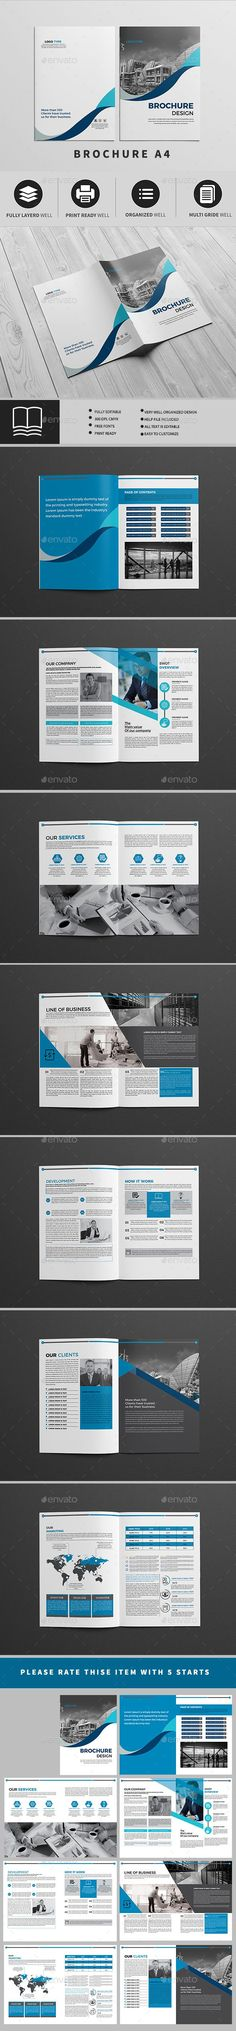 Haweya Annual Report 02 Indesign templates, Annual reports and - sample annual report